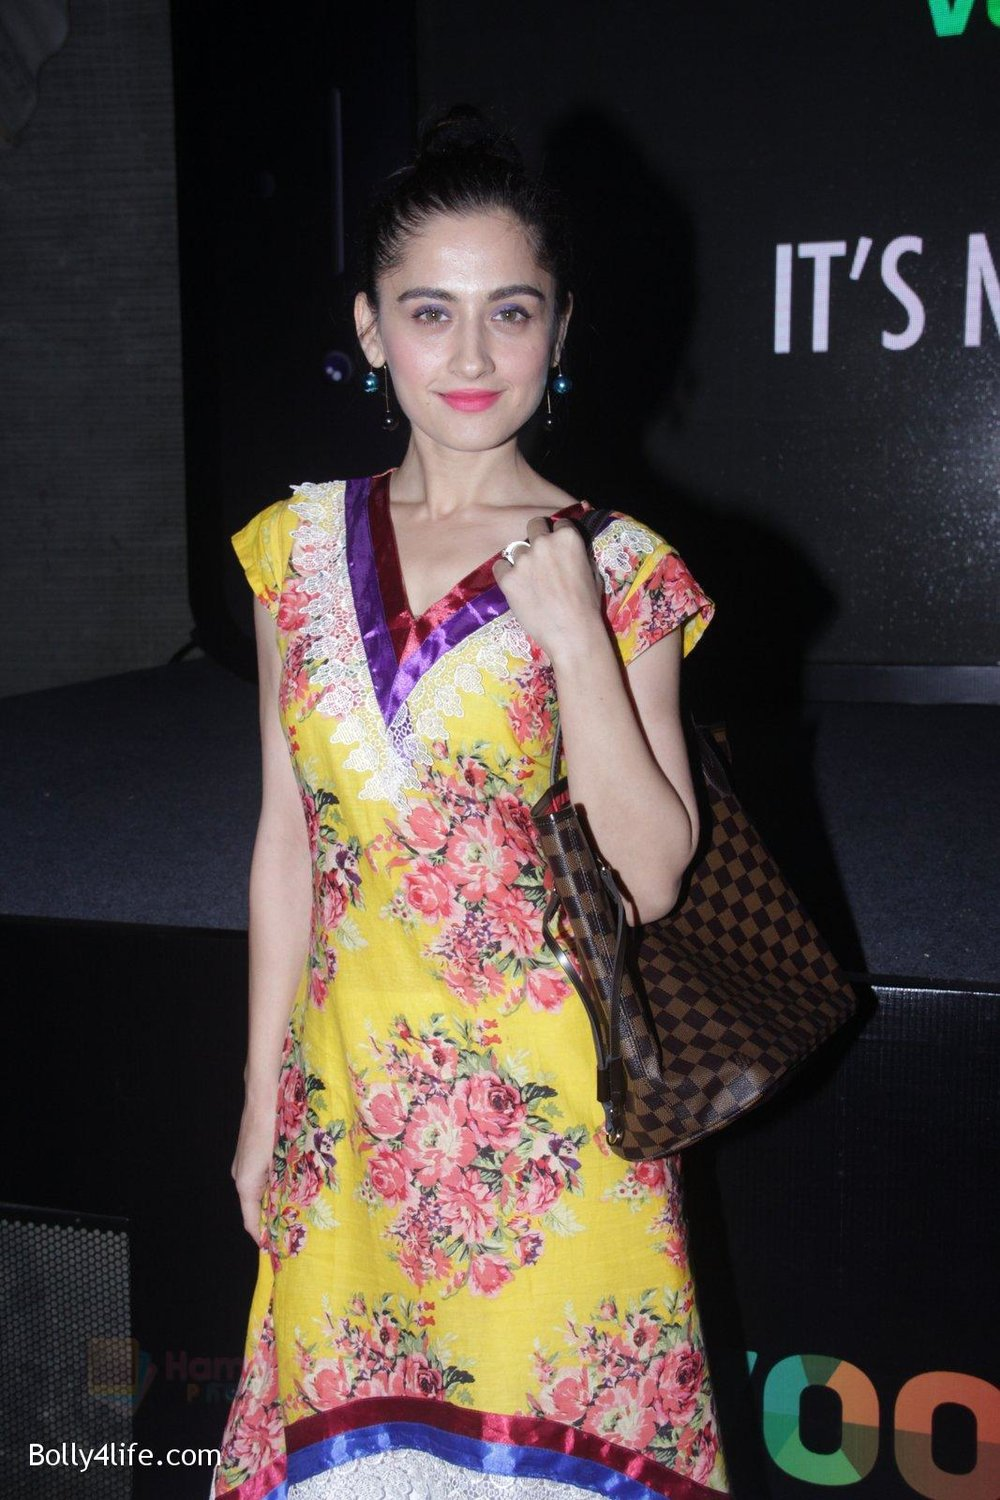 Sanjeeda-Sheikh-at-the-screening-of-It's-Not-That-Simple-on-3rd-Oct-2016-442.jpg